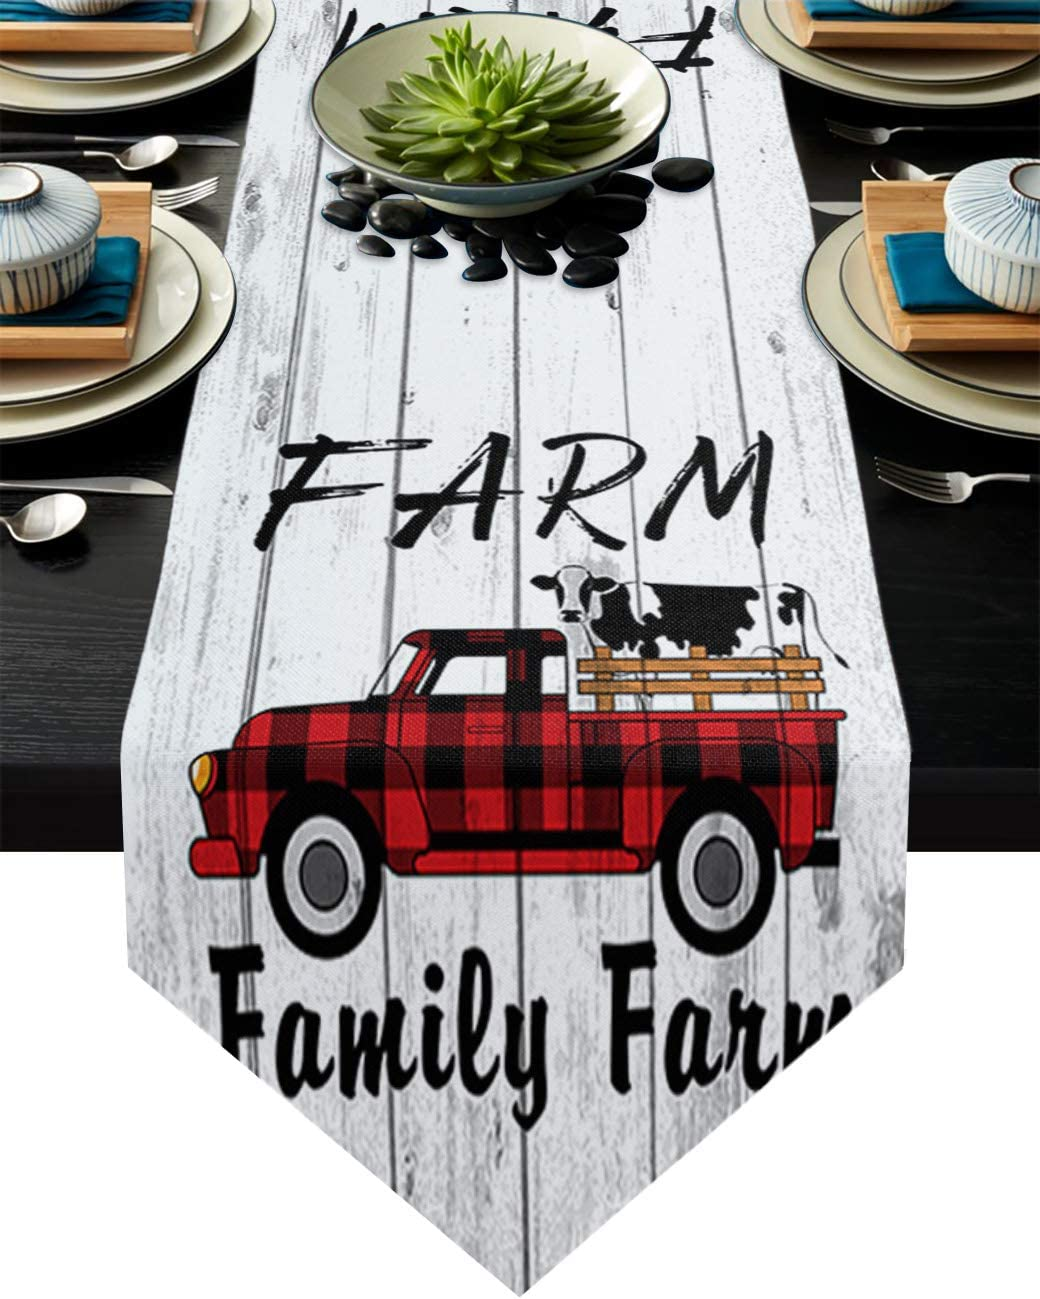 BedSweet Cotton Linen Table Runner Towel Light and Luxurious for Dinning American Farmhouse Theme Red Lattice Truck with Cow Table Runners for Home Decor Outdoor Parties 16 x 72 Inch